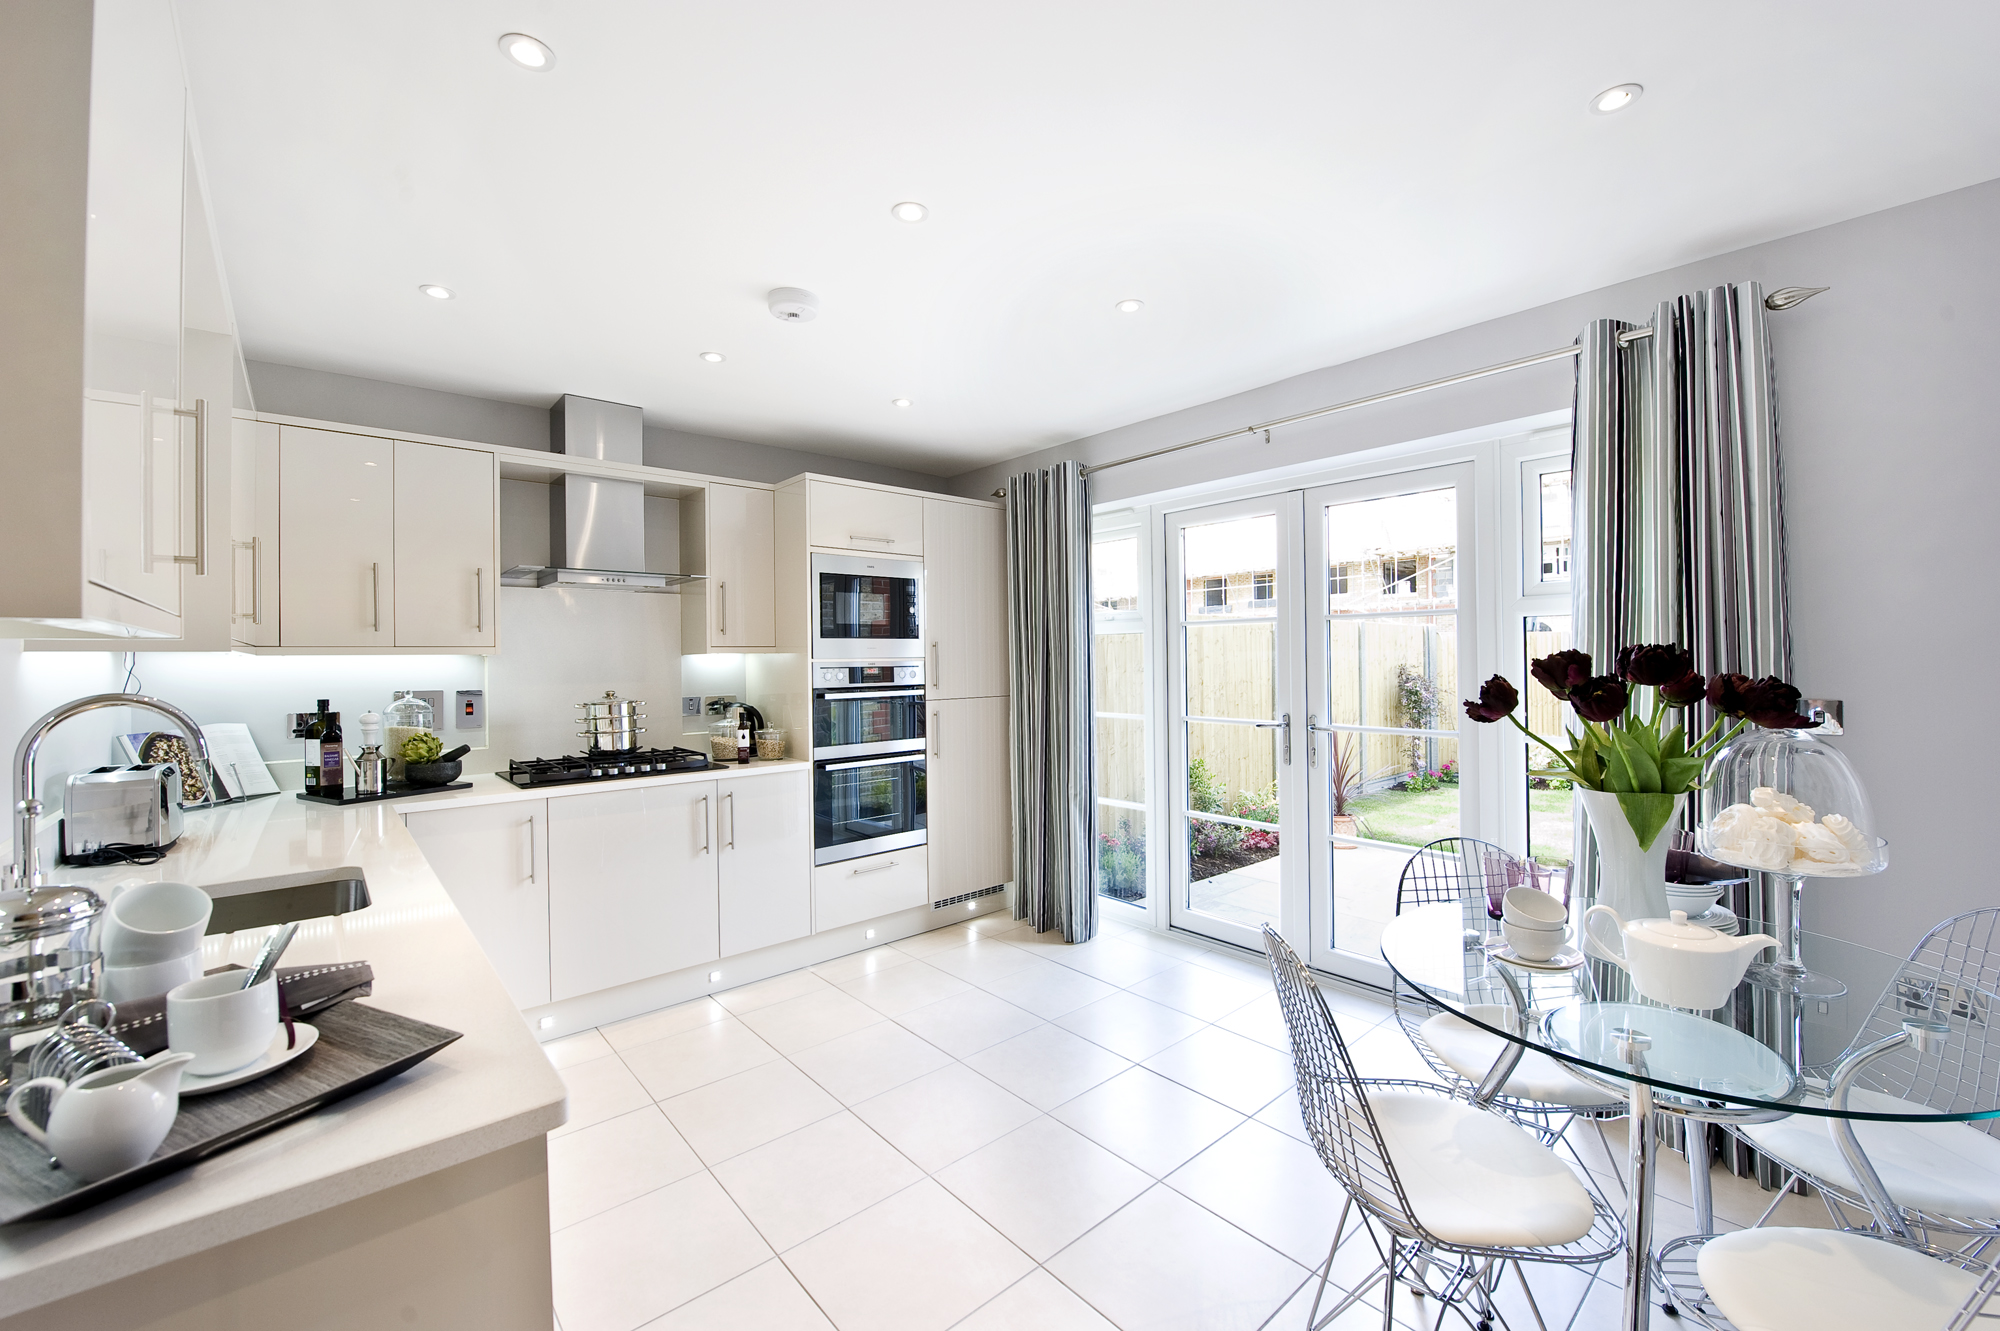 Only 3 homes remaining at cranbourne mews eton wick Home interior shows